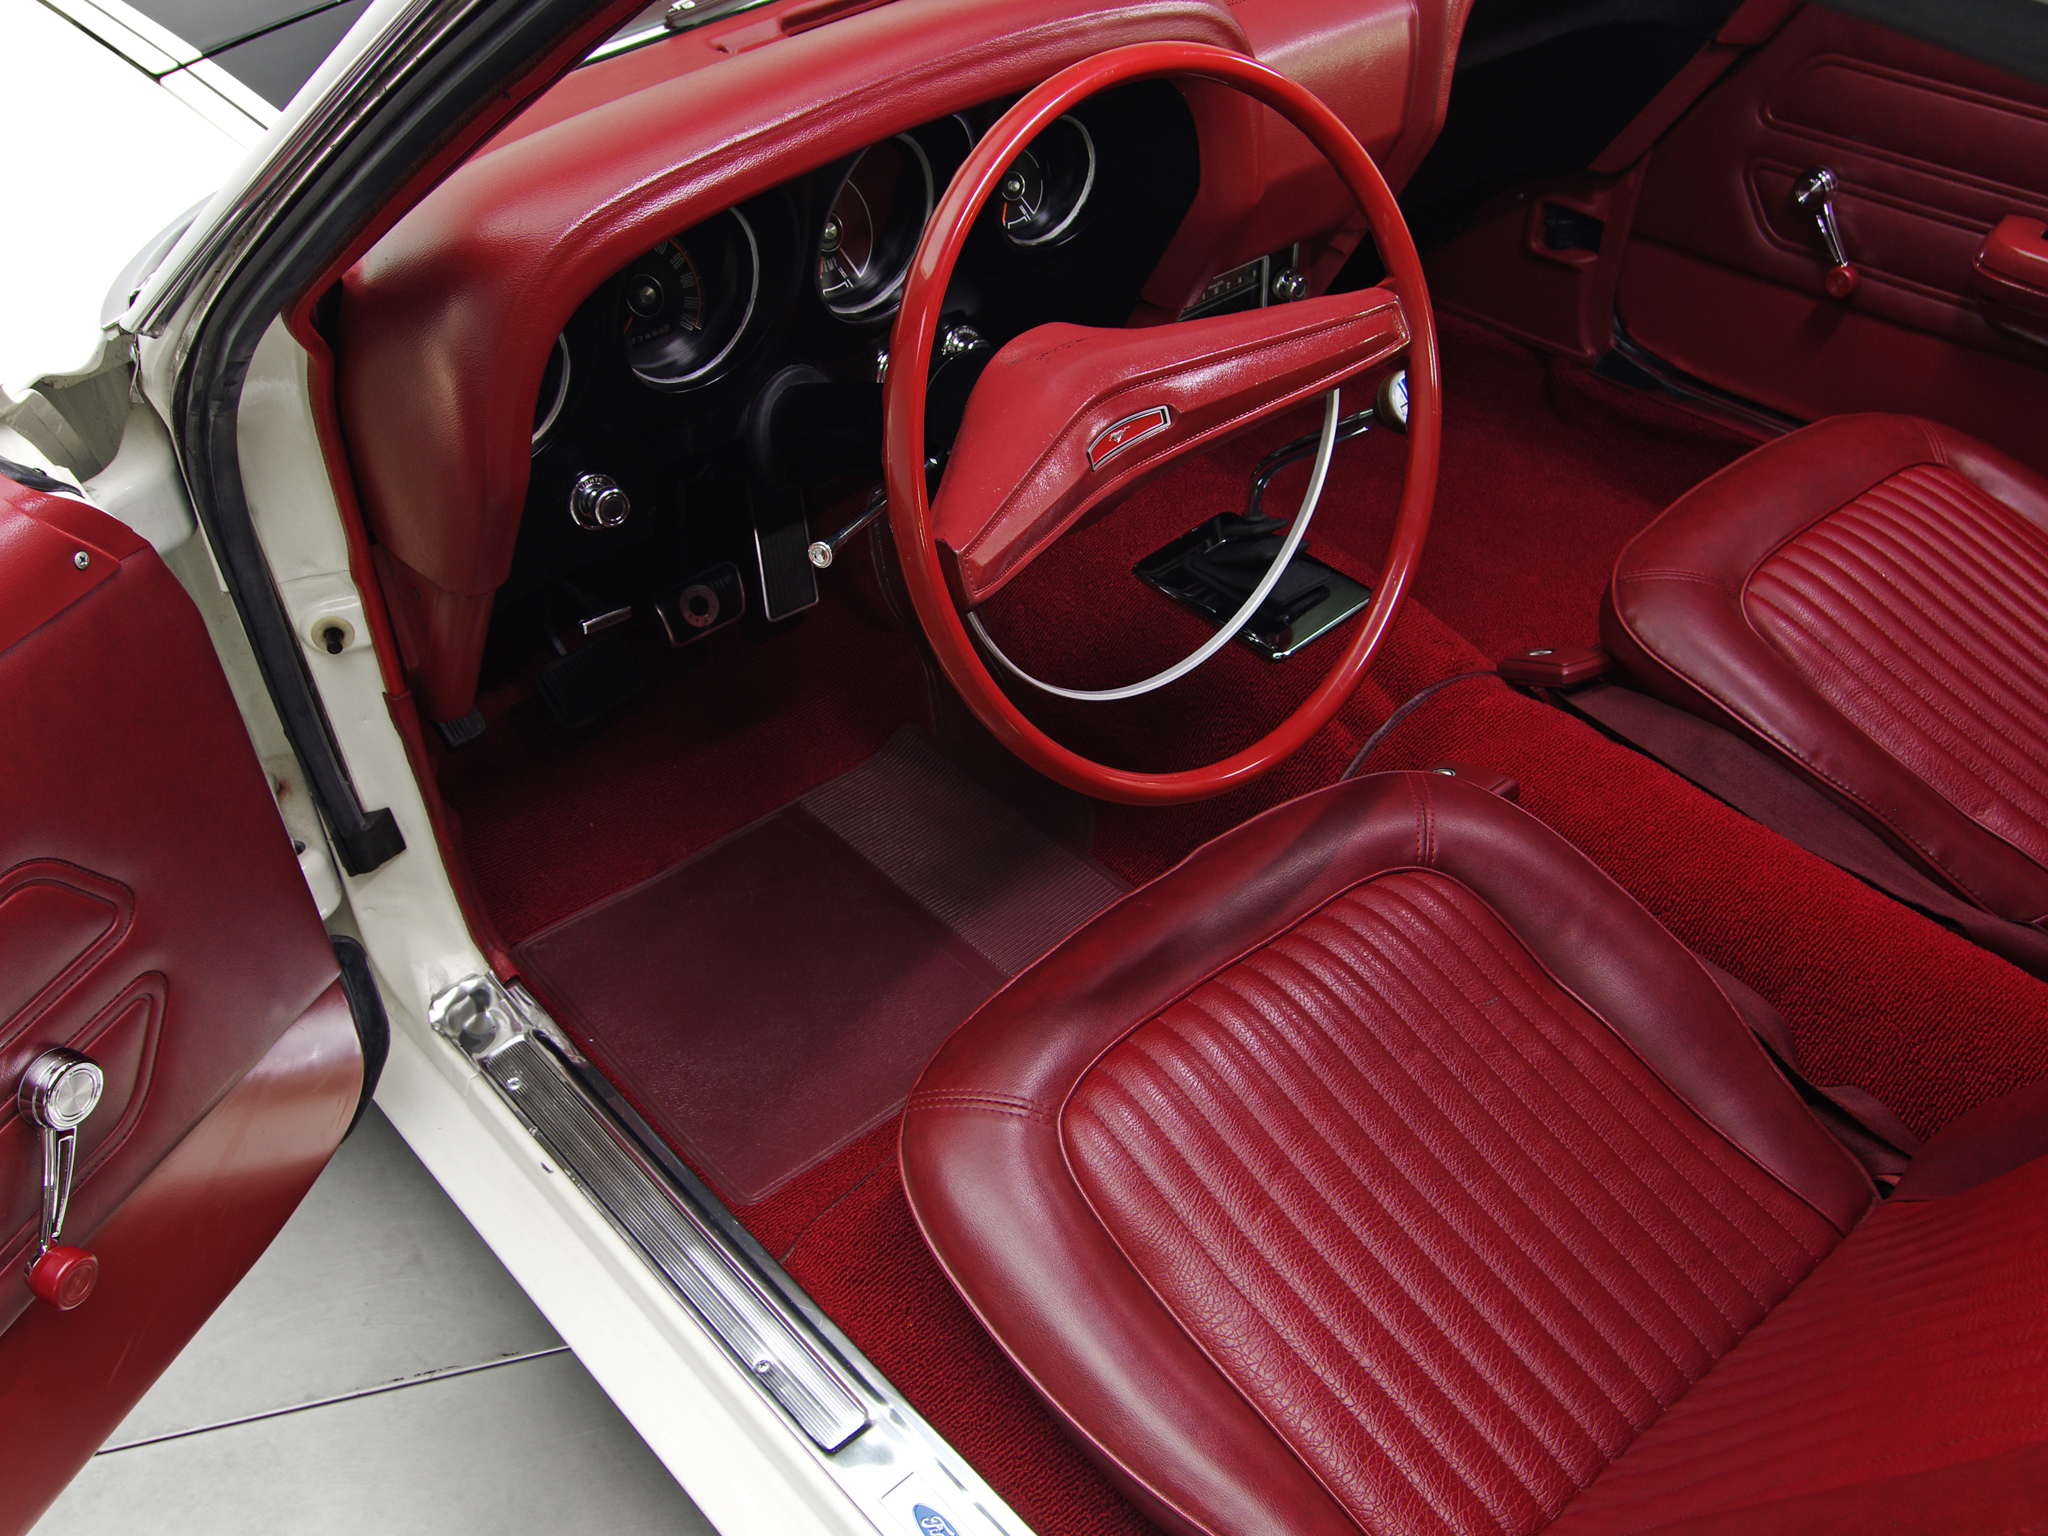 1969 ford mustang boss 302 muscle classic interior wallpaper 2048x1536 114841 wallpaperup - 1969 Ford Mustang Interior